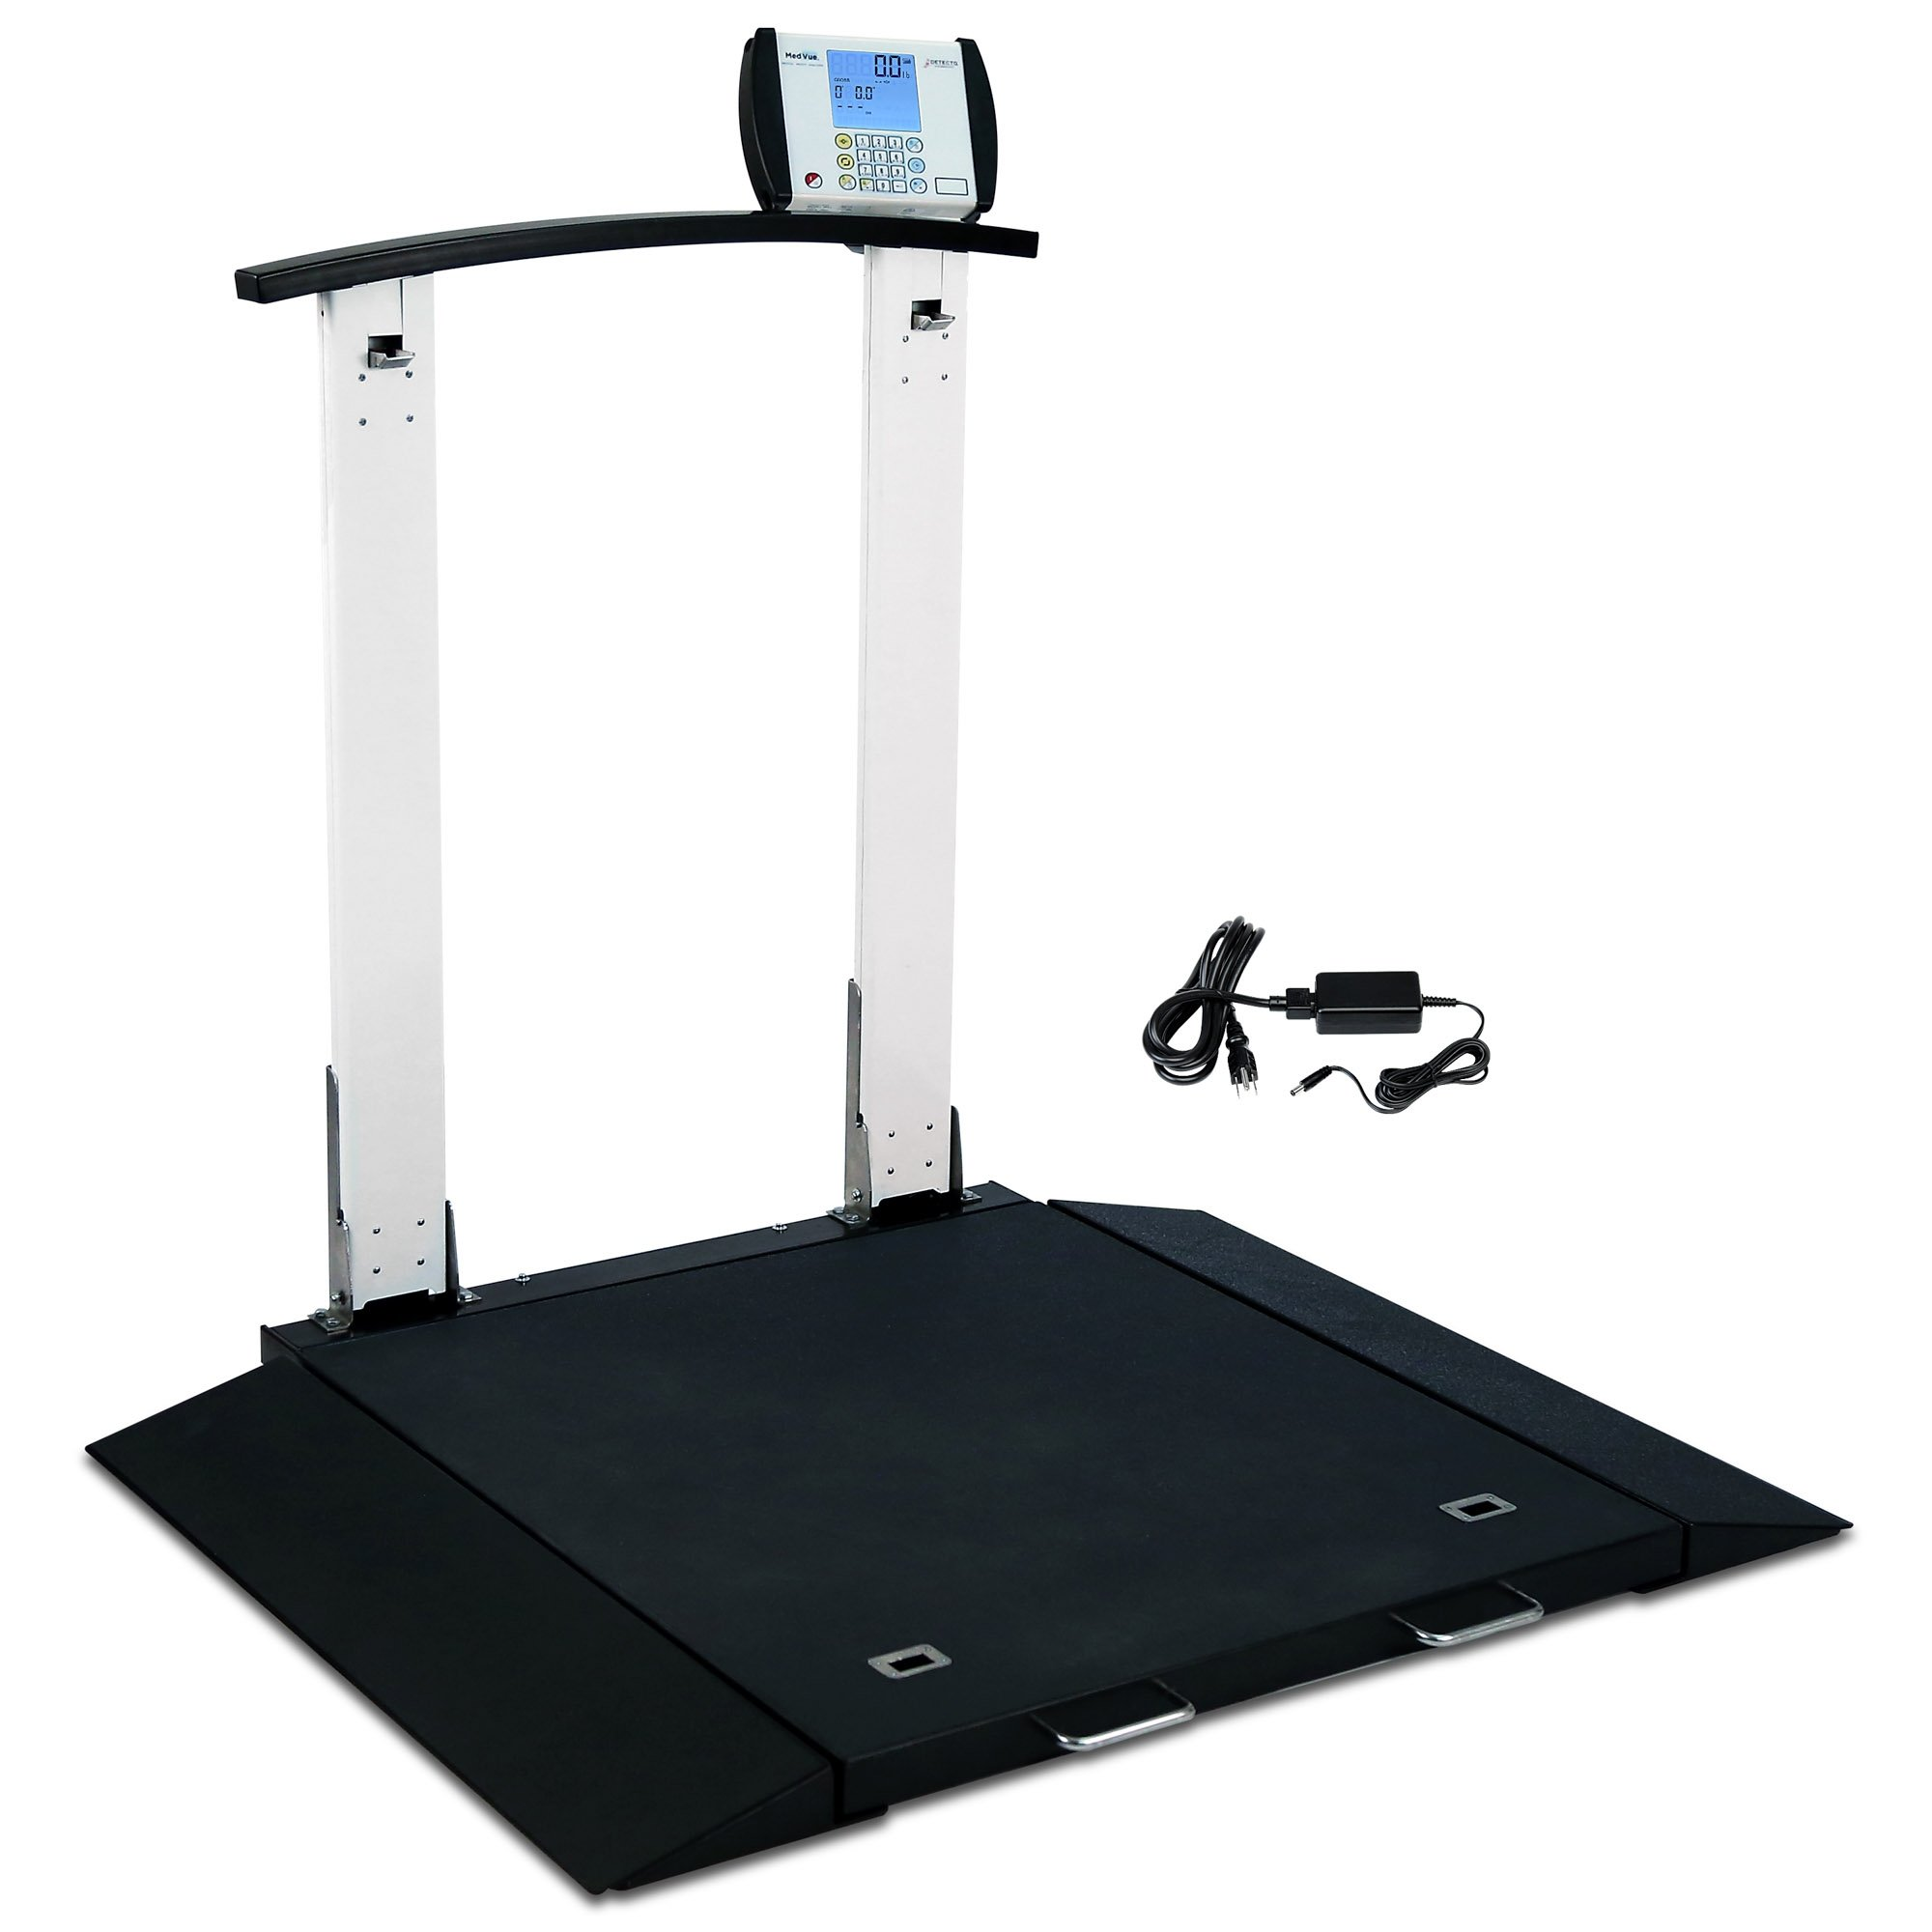 Folding Portable Digital Wheelchair Scale with Handrail and AC Adapter